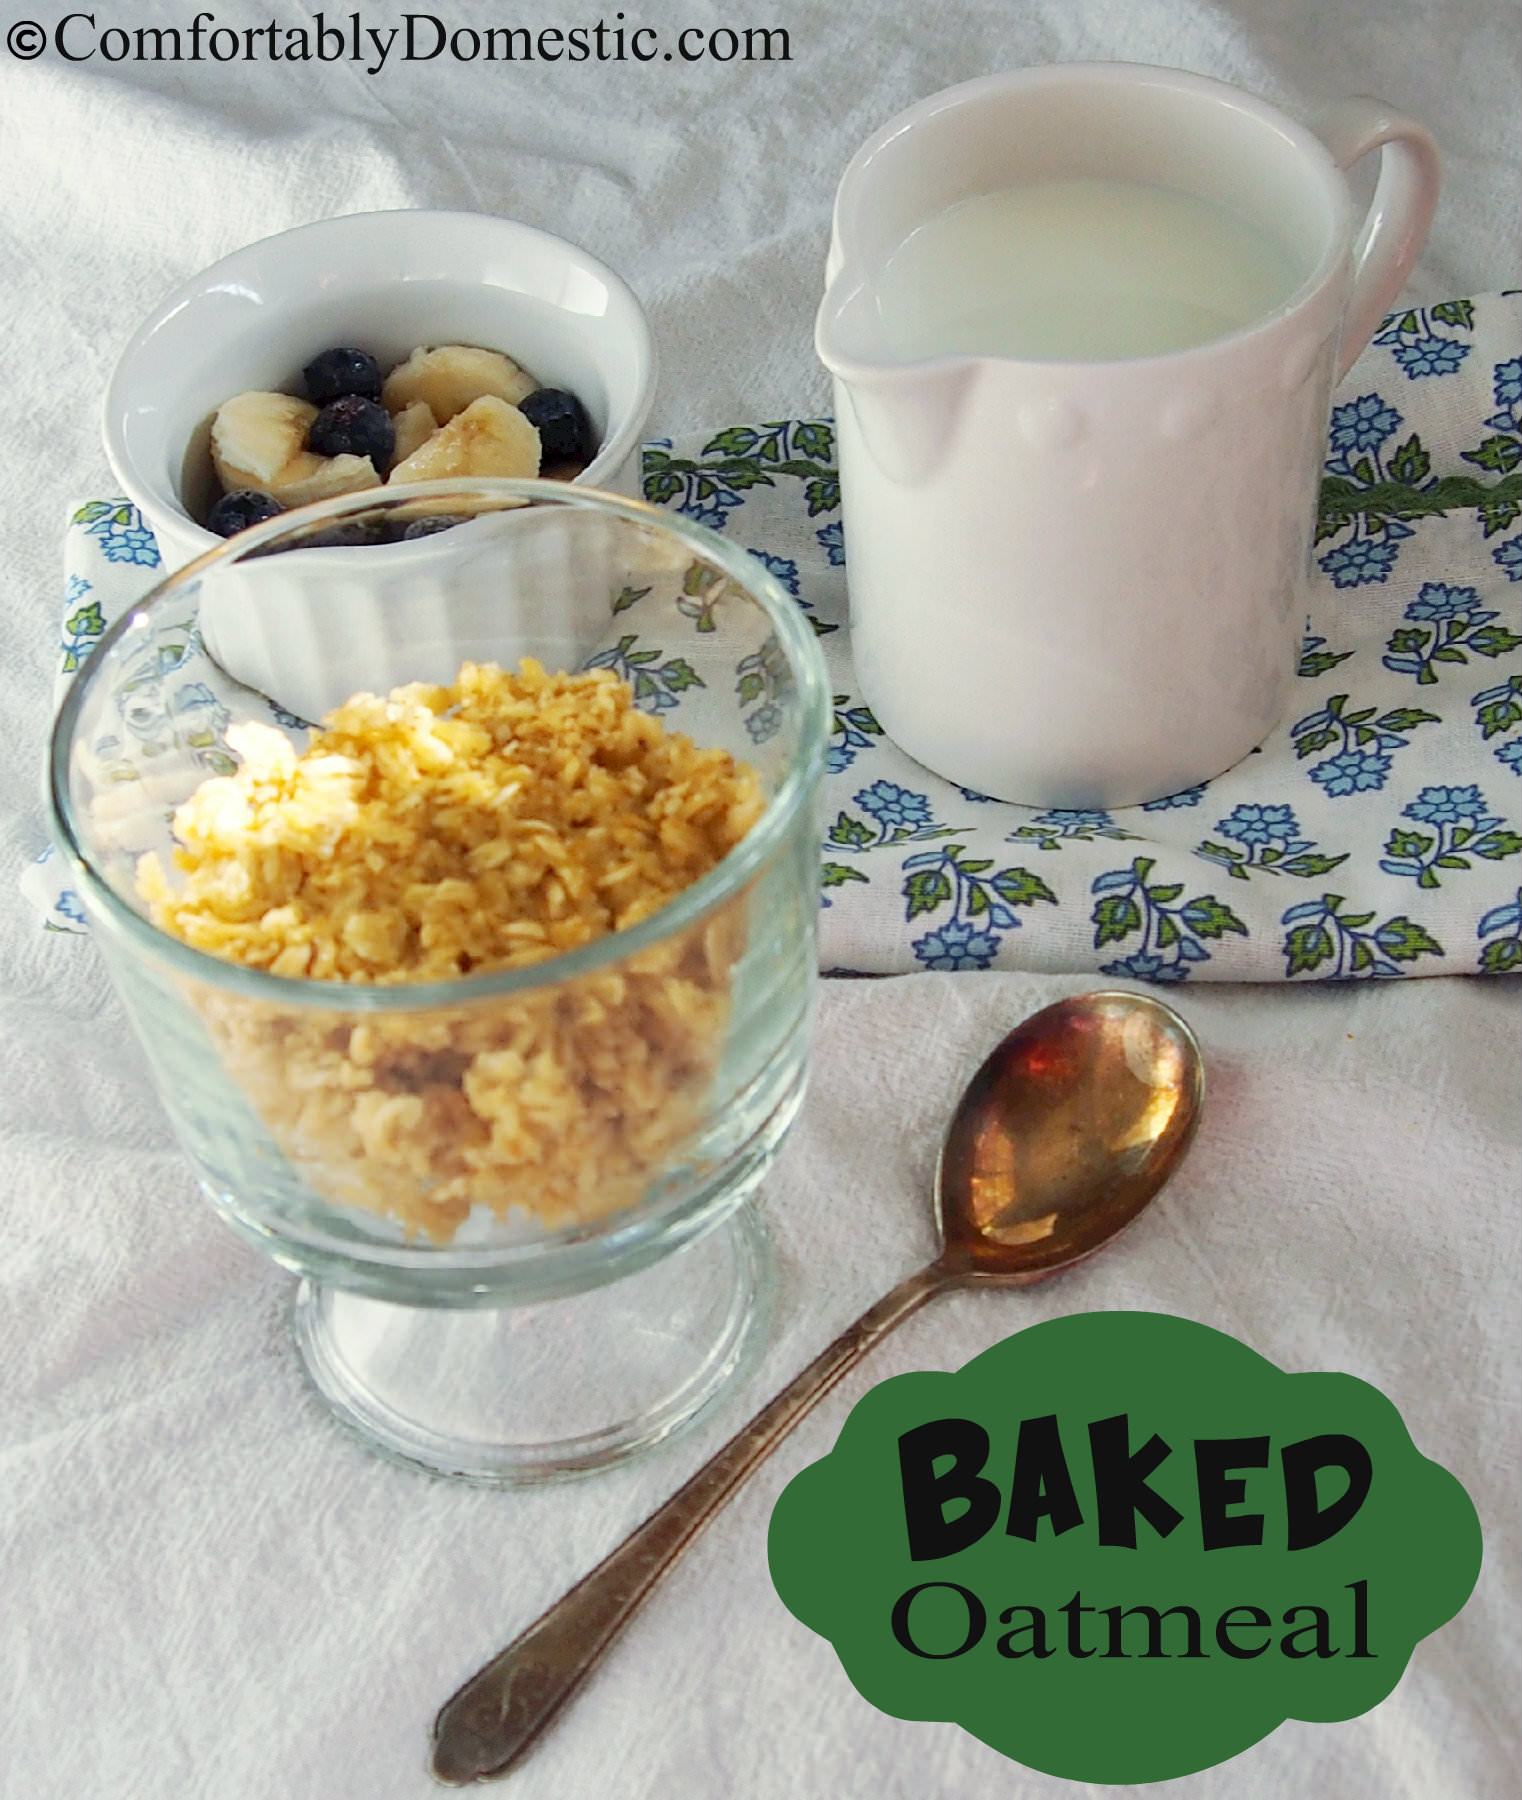 Hearty Baked Oatmeal - Get the recipe from ComfortablyDomestic.com